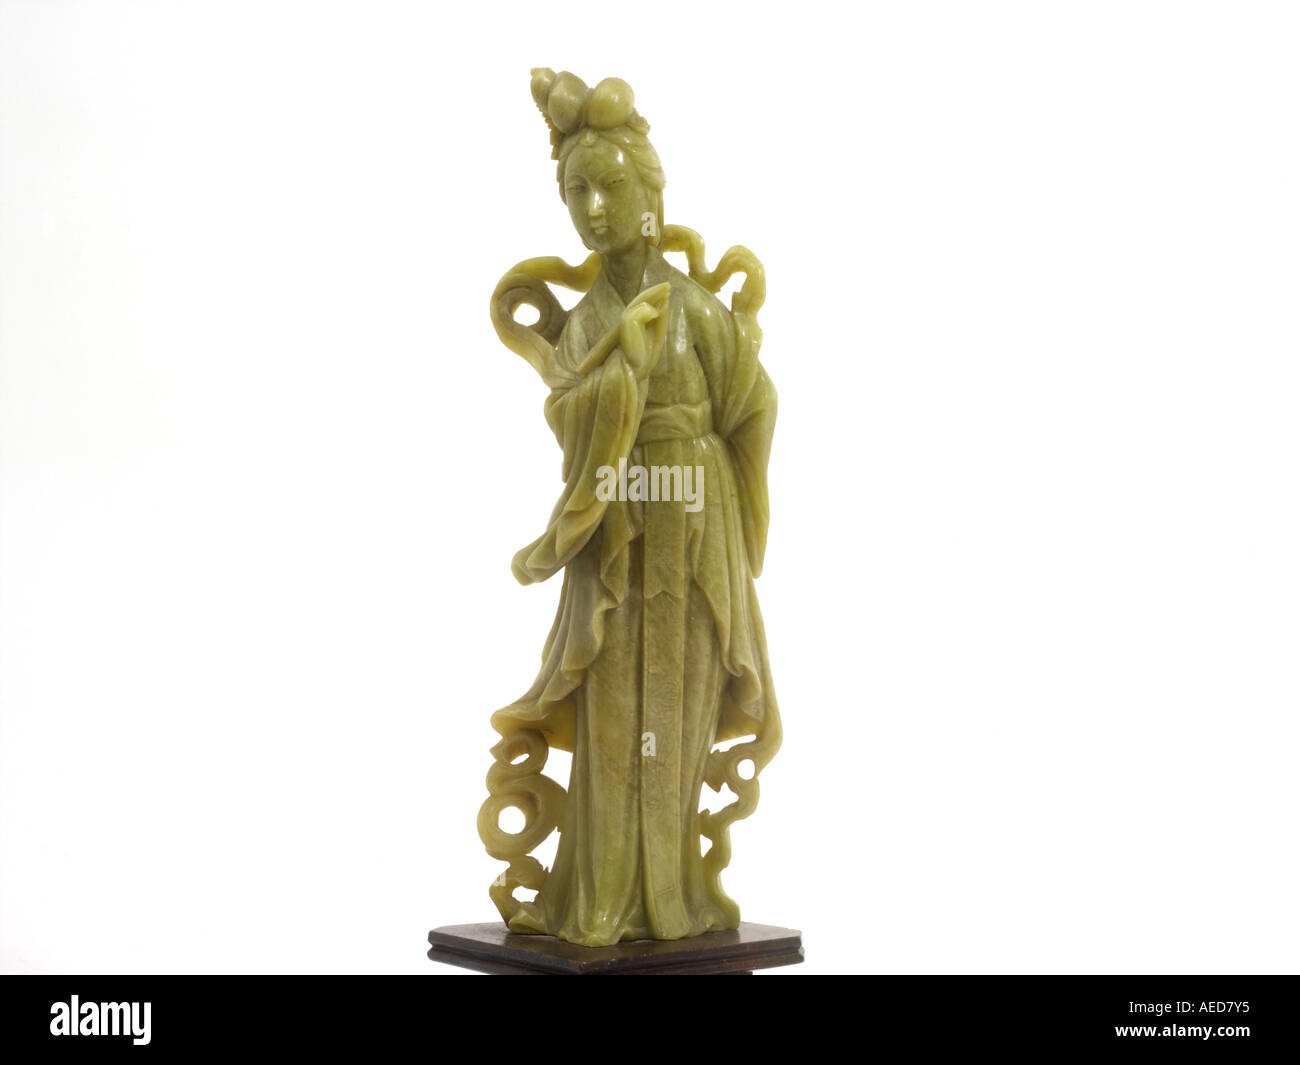 Jade Sculpture Of Kuan Yin Bodhisattva Of Compassion Jade Is A